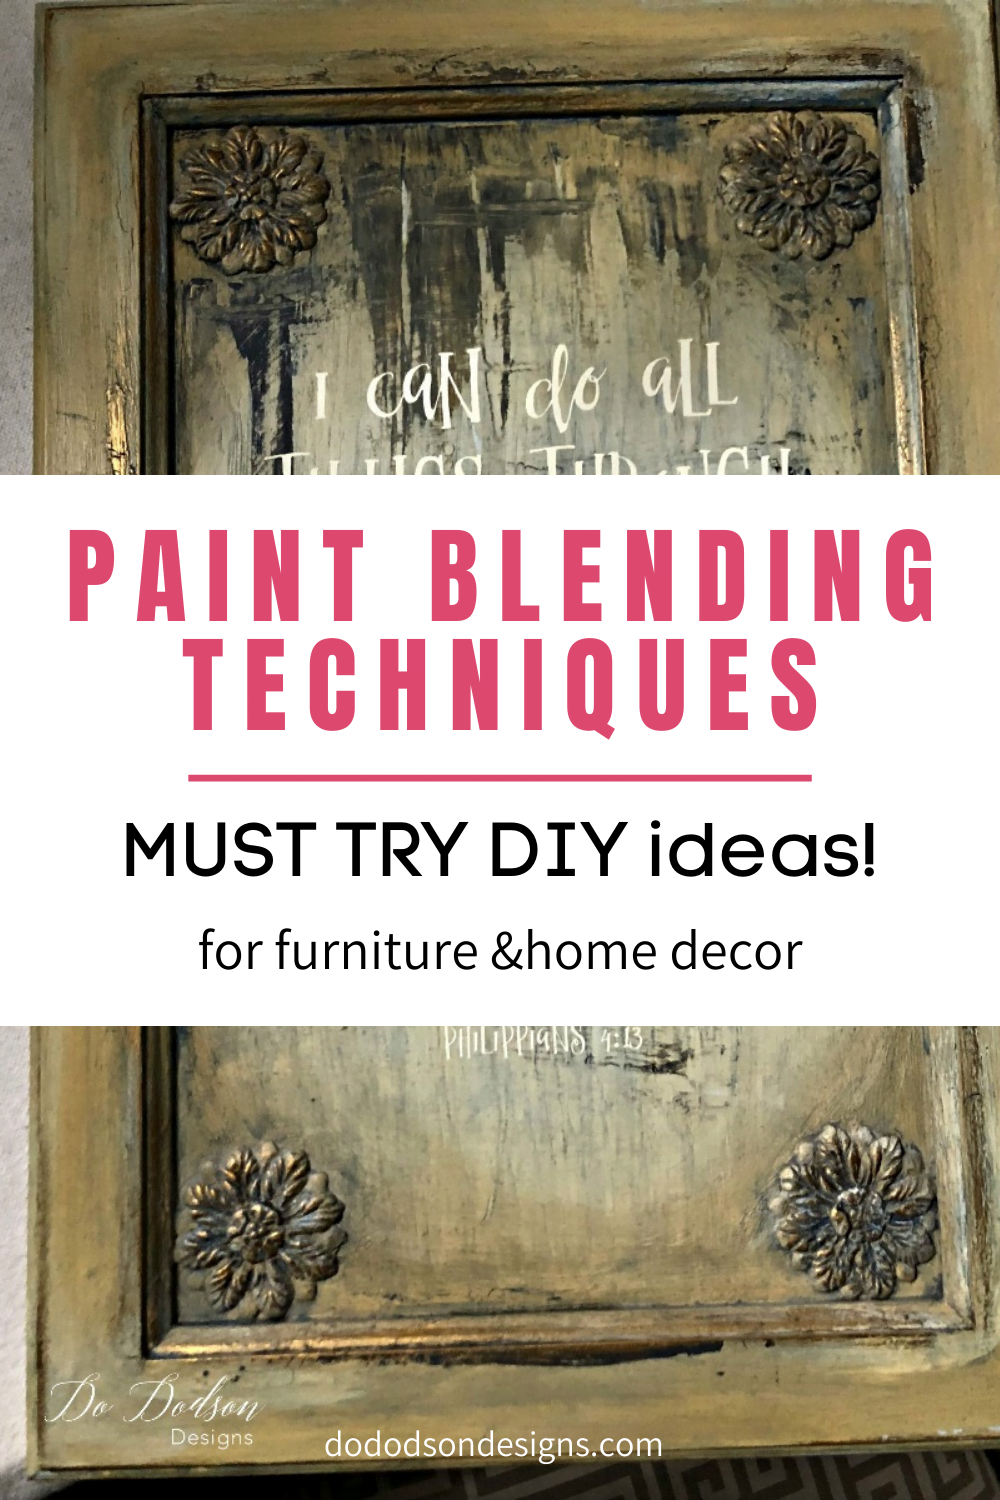 Easy Paint Blending Techniques For Furniture & Home Decor